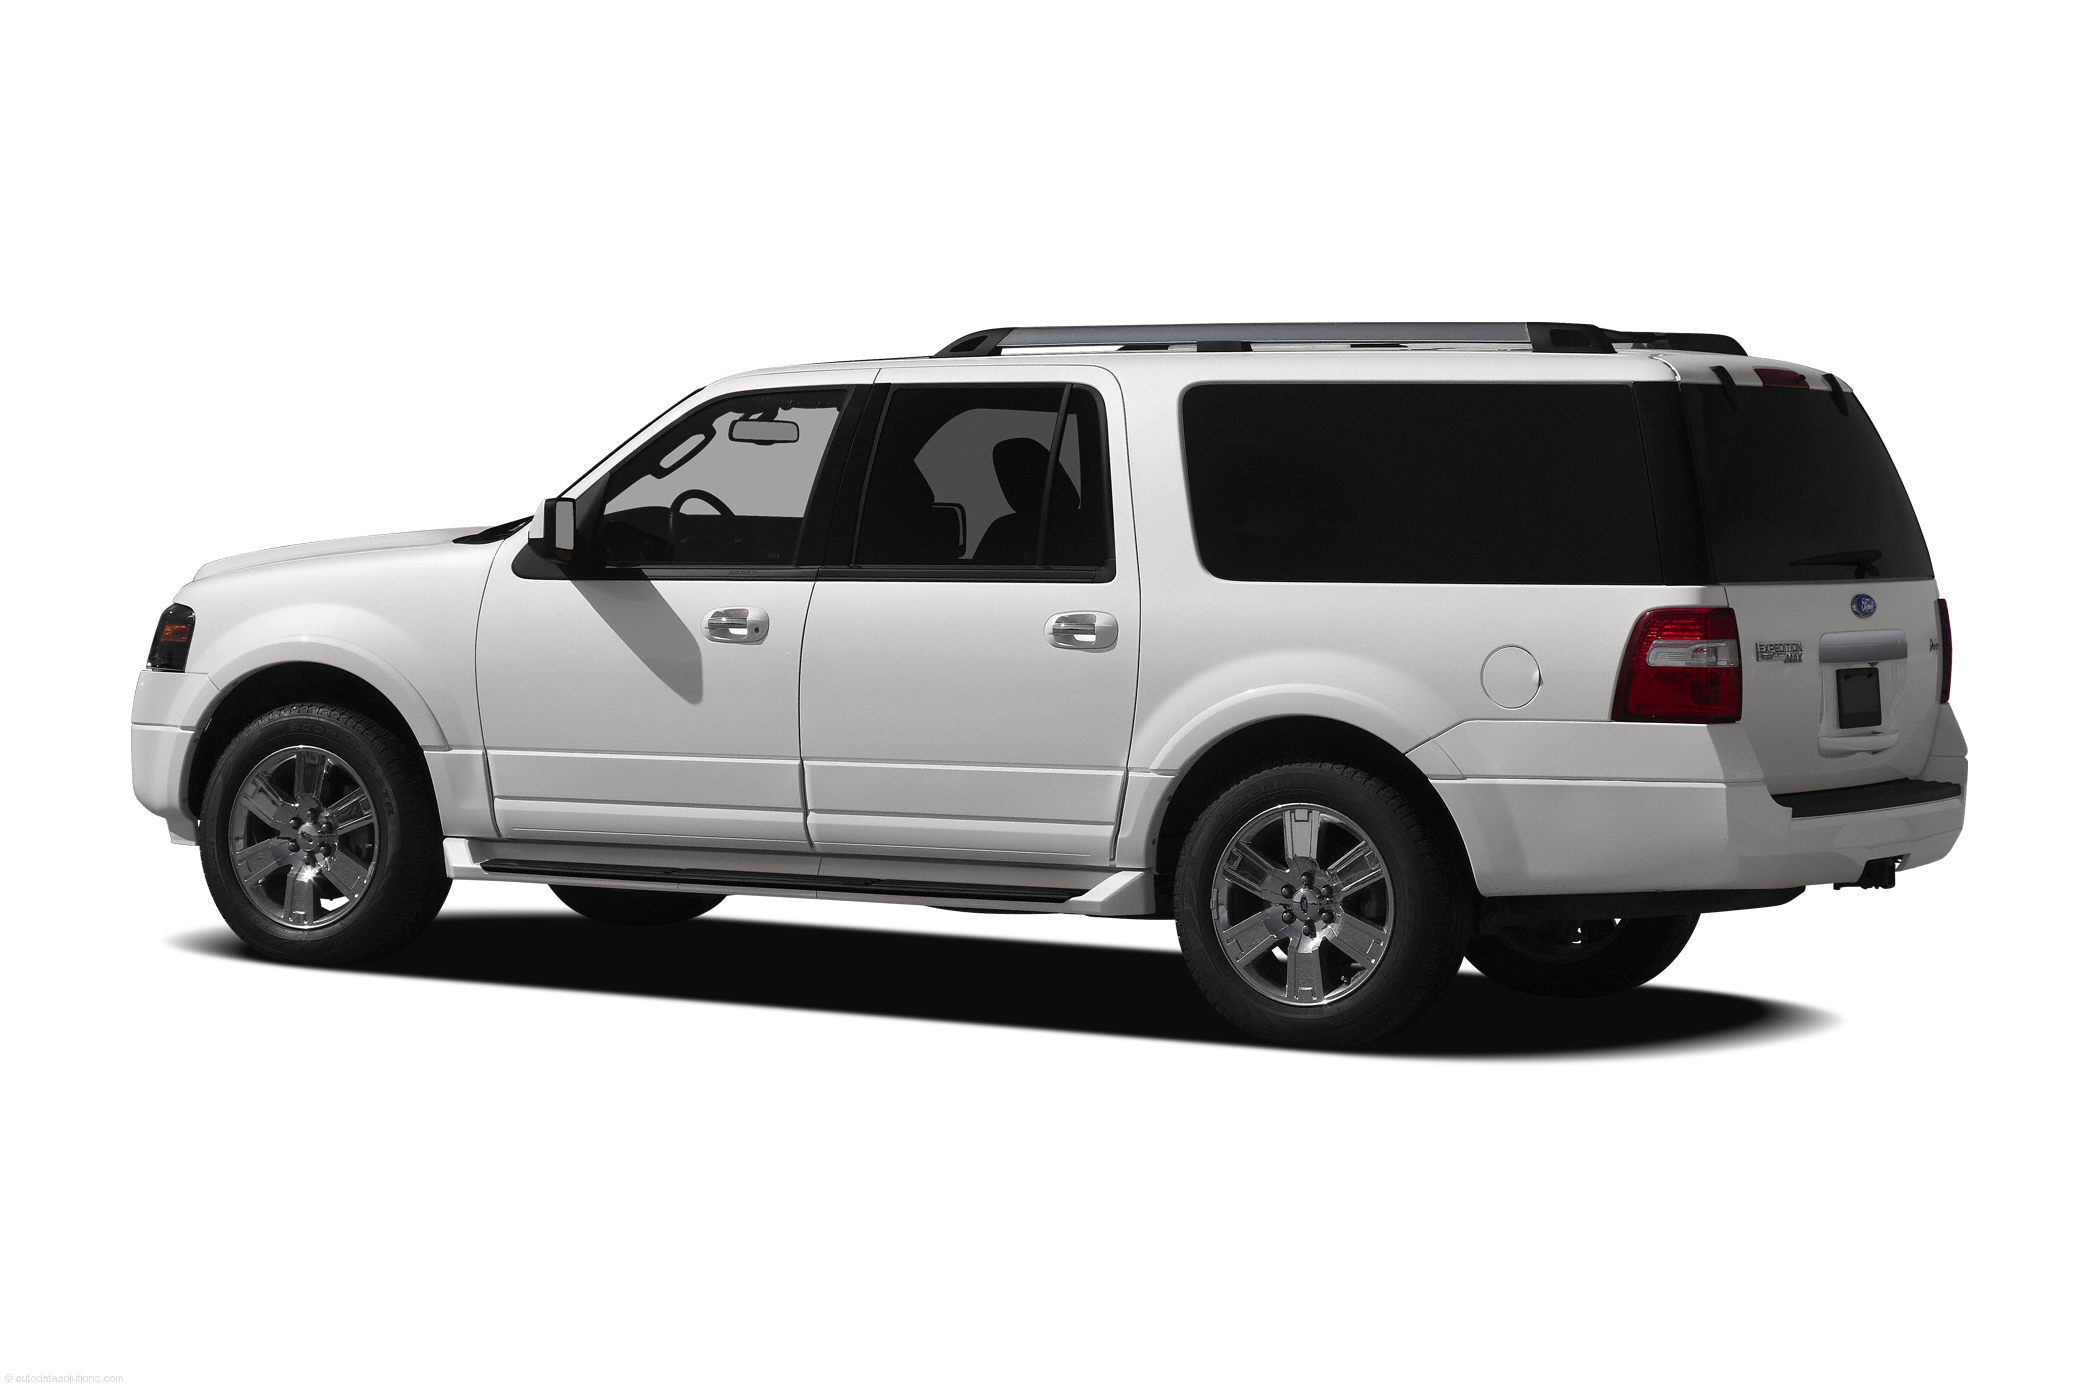 2011 ford expedition 3 - 2011 Ford Expedition Xl